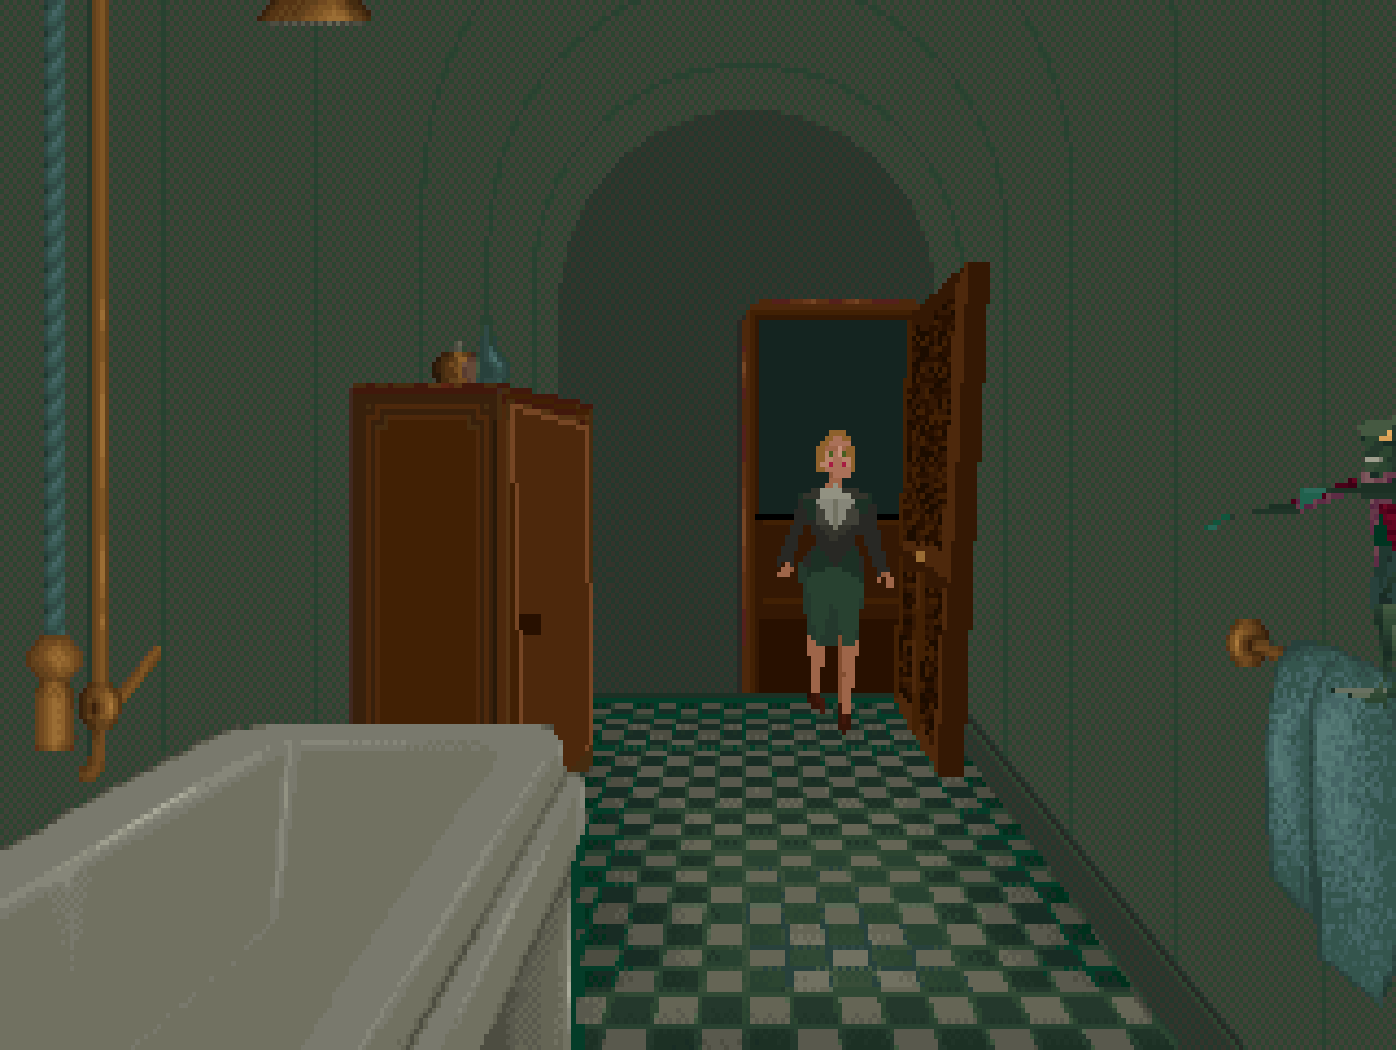 Alone In The Dark Is The Best Worst Game I Ve Ever Played By